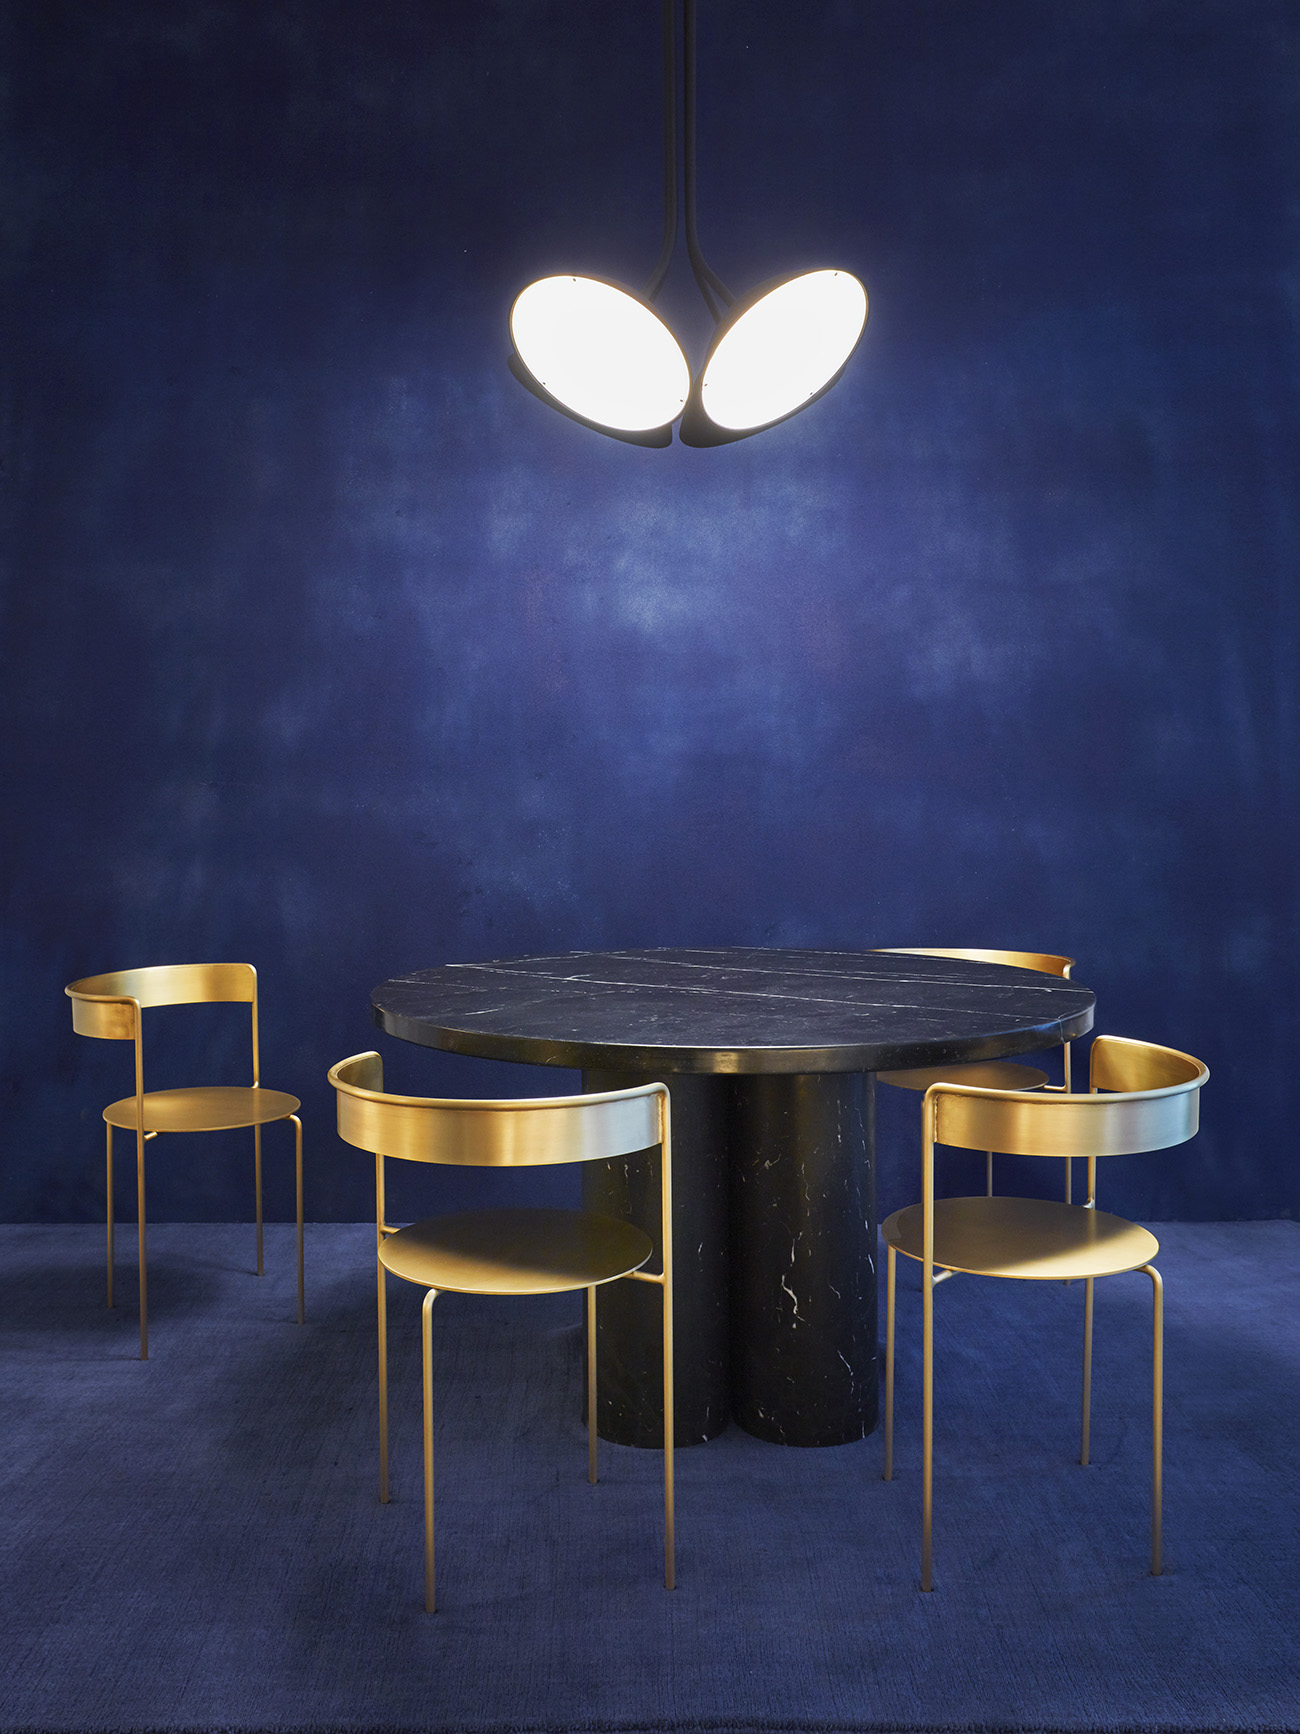 Matter-Made-Landscape-4-Pendant-Ligh-Slon-Dining-Table-Avoa-Chairs.jpg